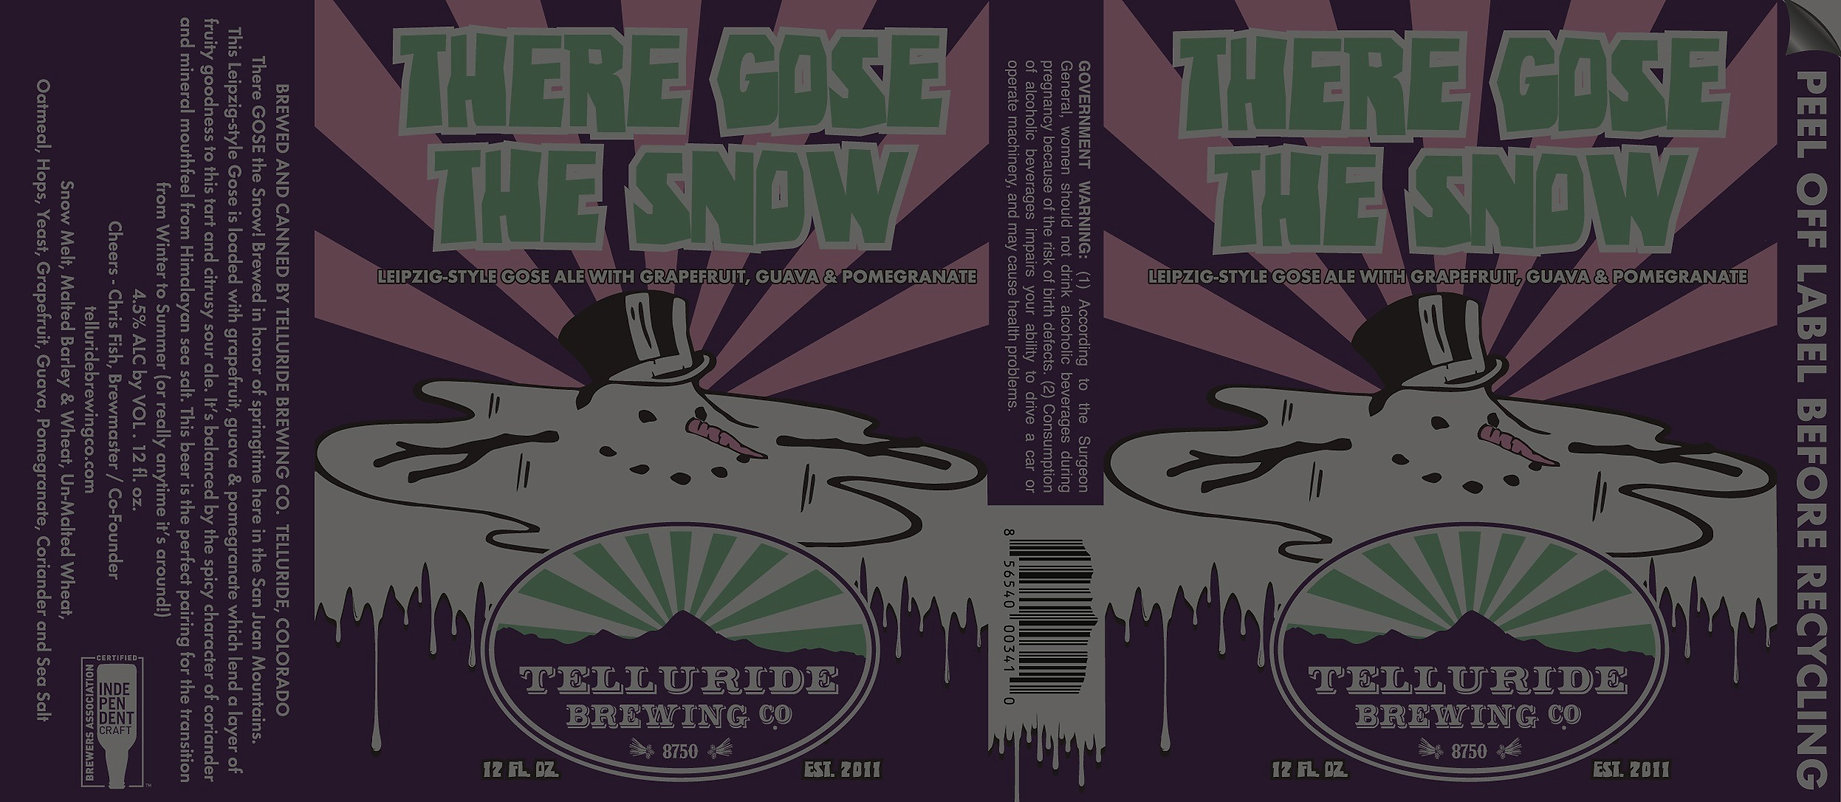 There%2520Gose%2520the%2520Snow%2520USTL